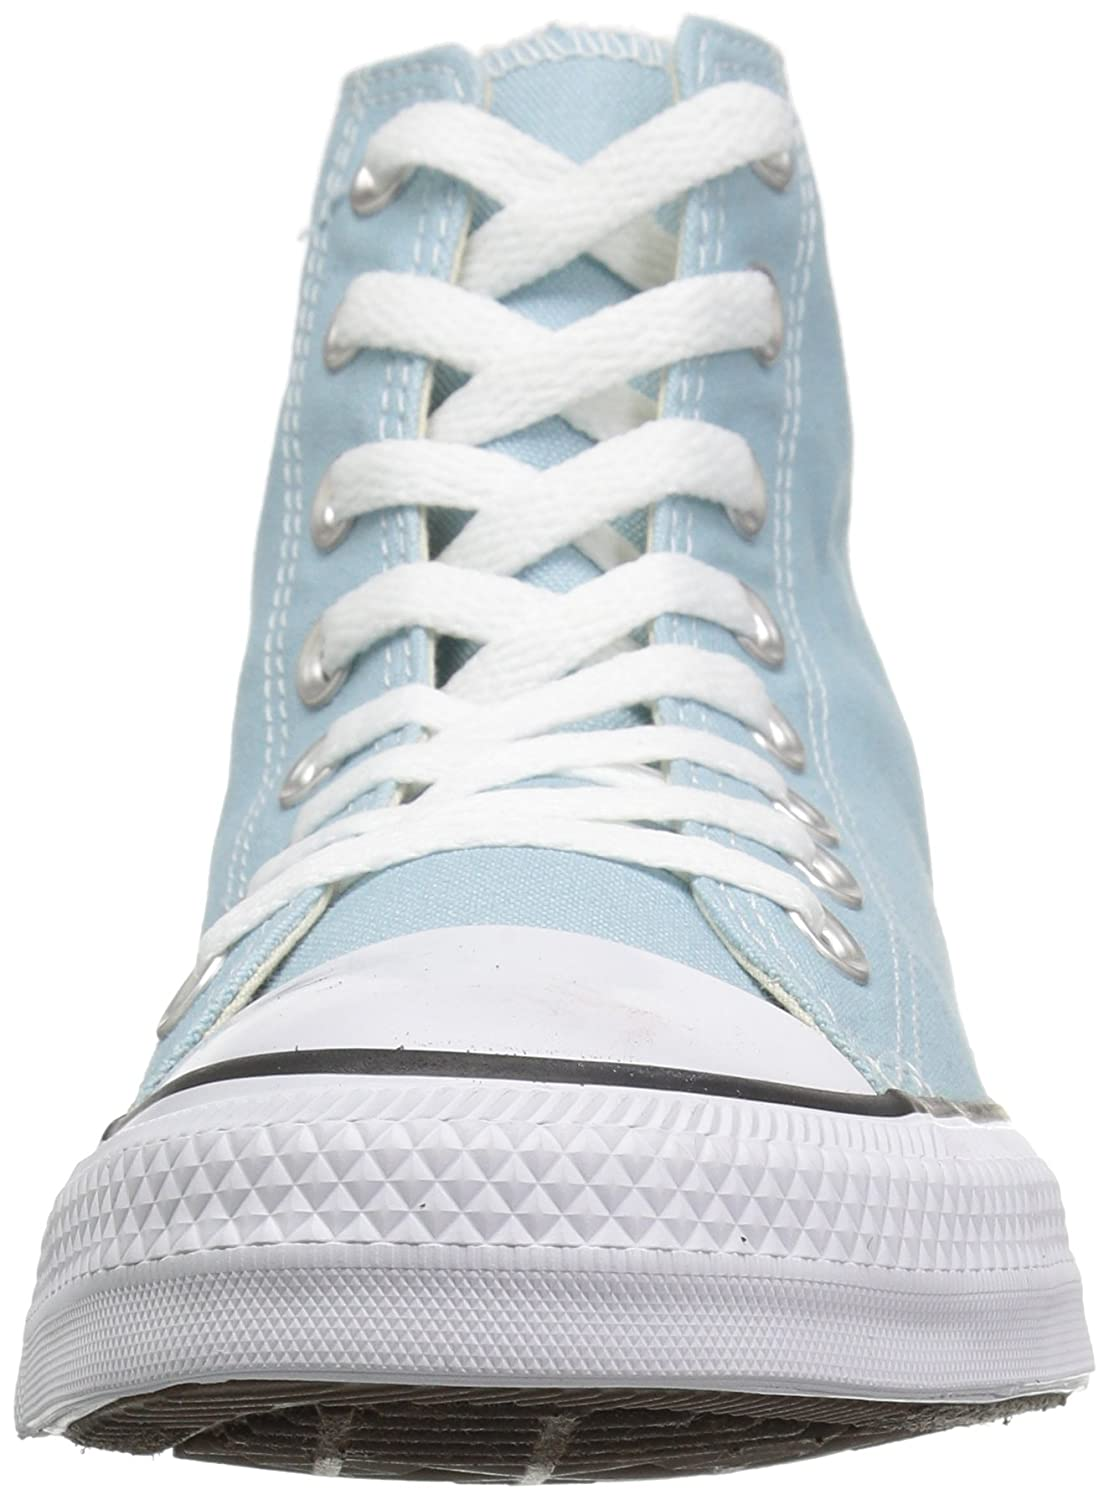 Converse Women's Chuck Taylor All Star Seasonal Canvas High Top Sneaker B075TG1C3K 8 US Men/10 US Women|Ocean Bliss